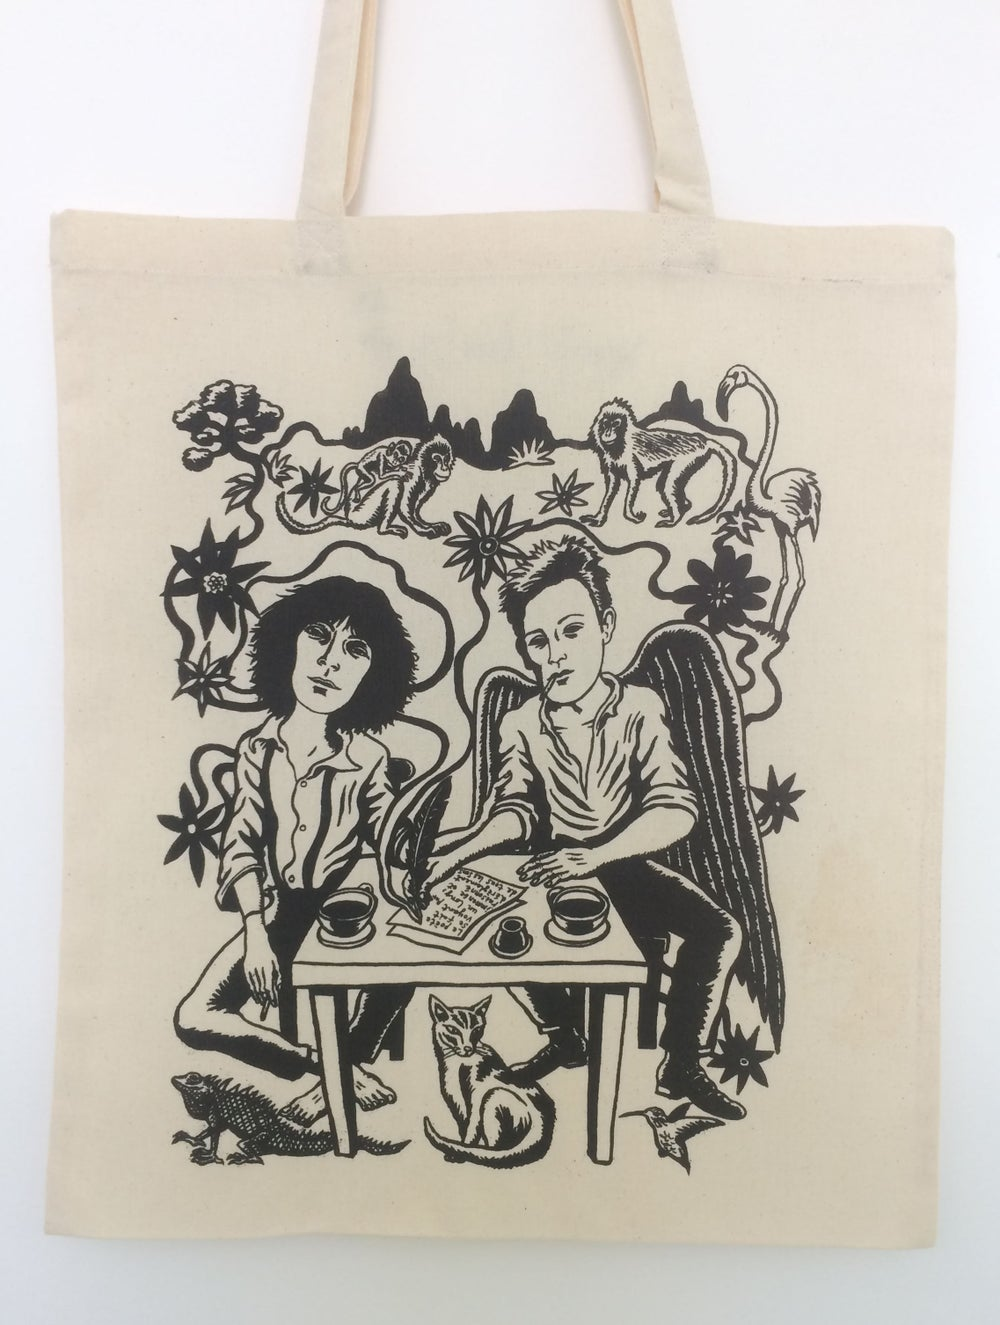 Image of Cosmic Lovers tote bag- Patti Smith and Arthur Rimbaud